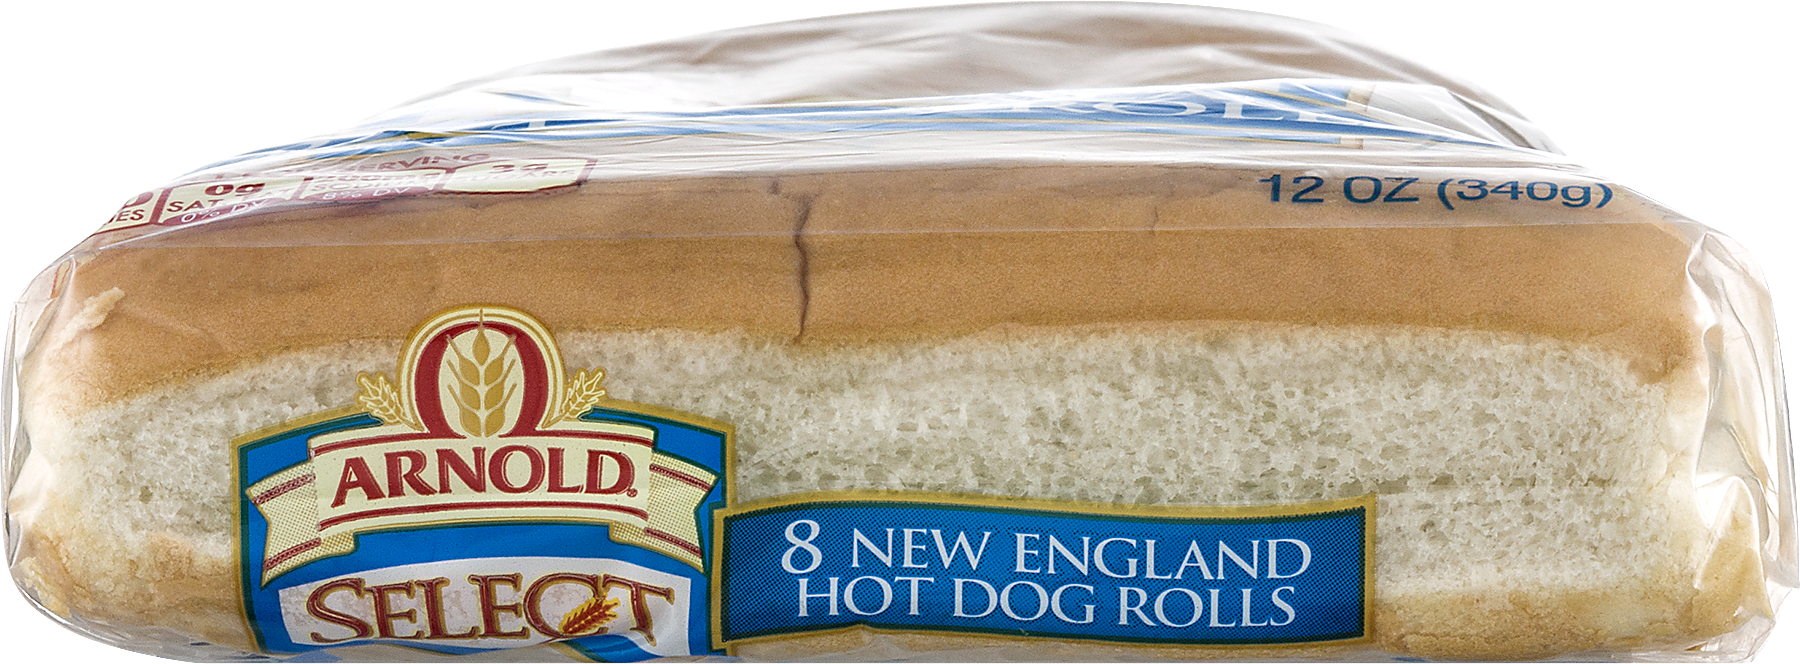 Arnold Select New England Hot Dog Rolls, 8 Ct, 12 Oz   Walmart.com